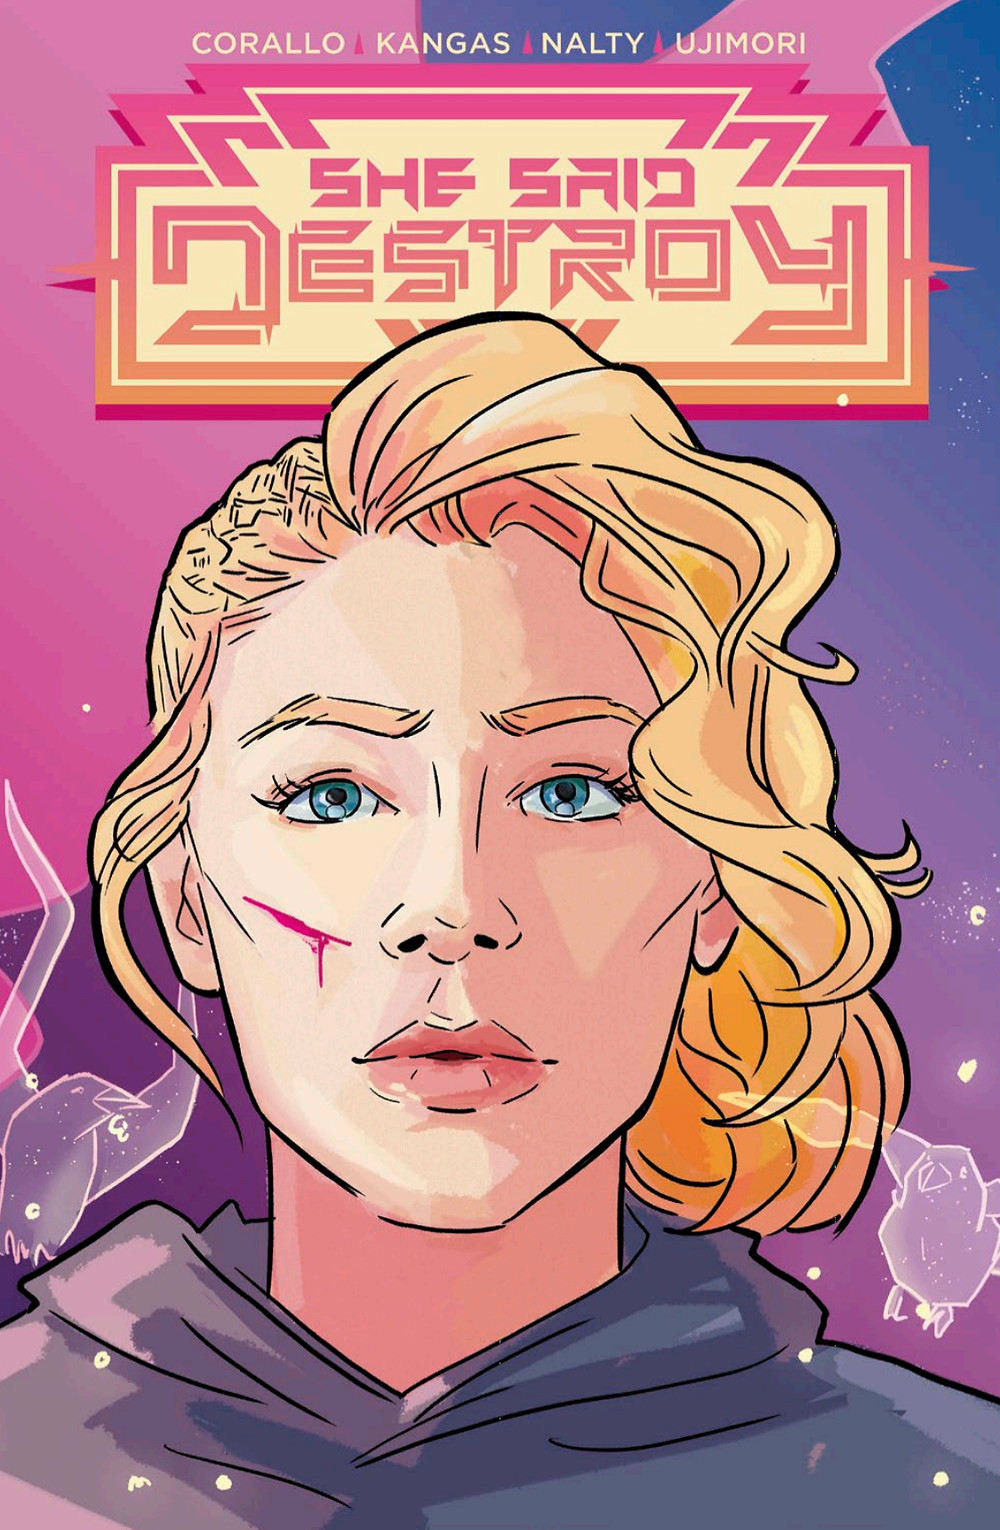 She Said Destroy, Issue #2, cover, Vault Comics, Corallo/Kangas